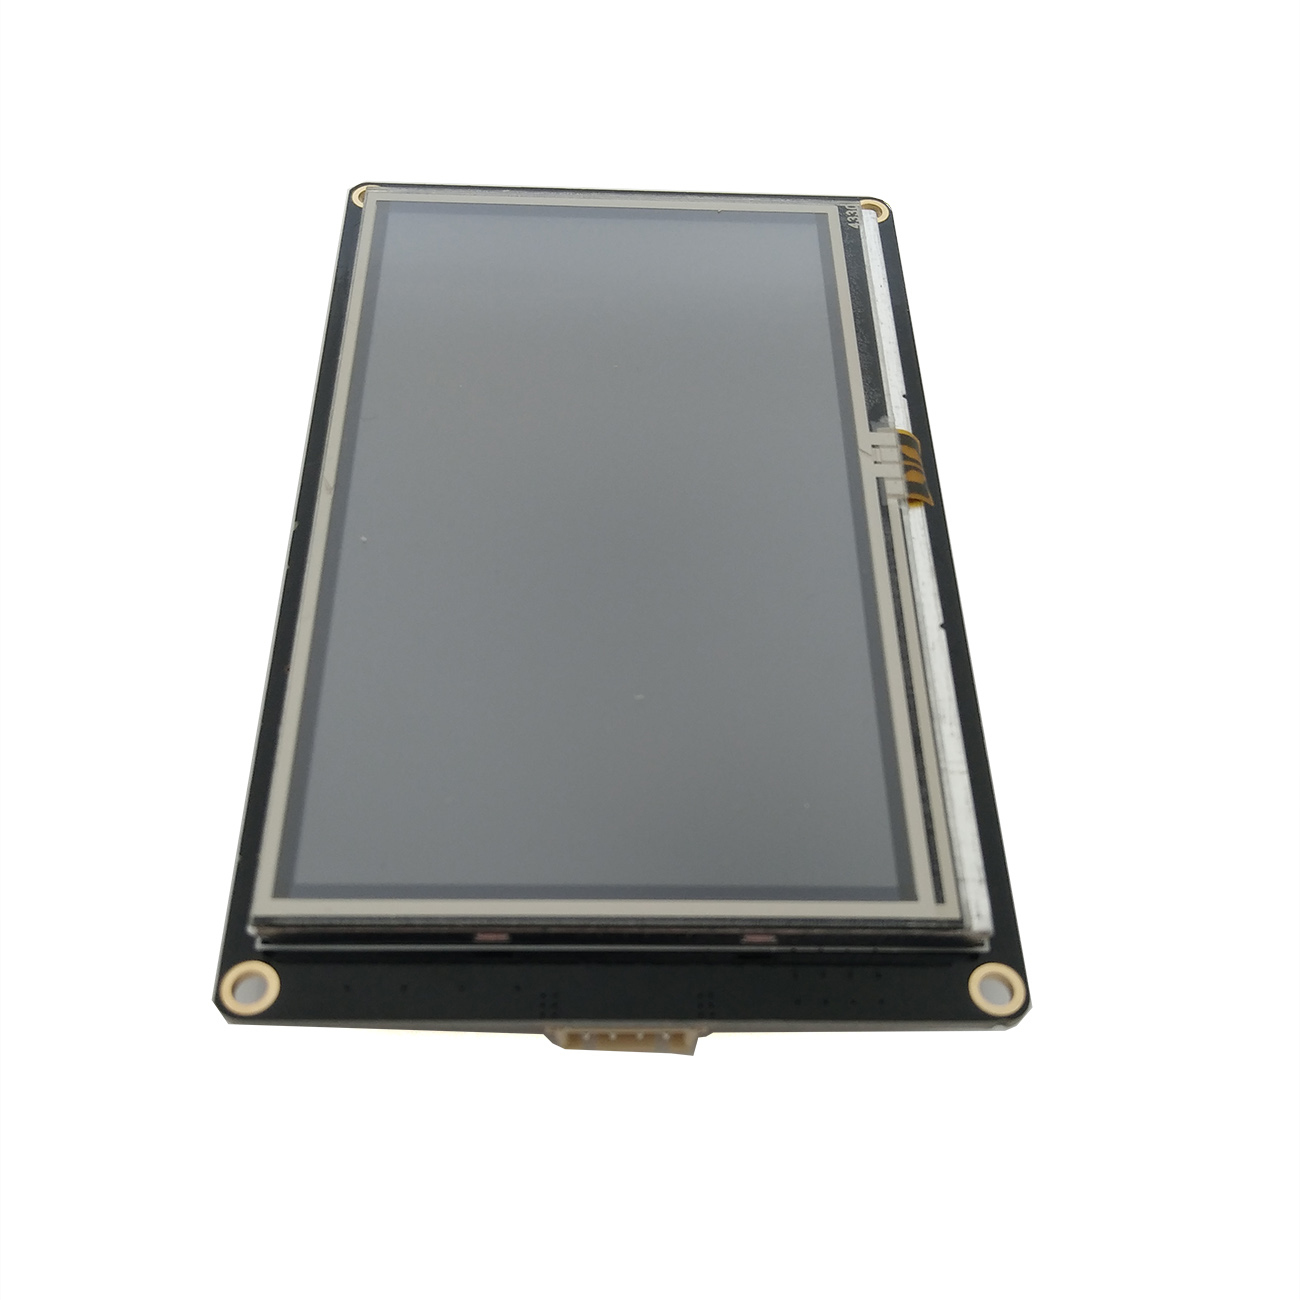 Image 5 - Nextion 4.3 Enhanced HMI Intelligent Smart USART UART Serial Touch TFT LCD Module Display Panel For Raspberry Pi Kits-in LCD Modules from Electronic Components & Supplies